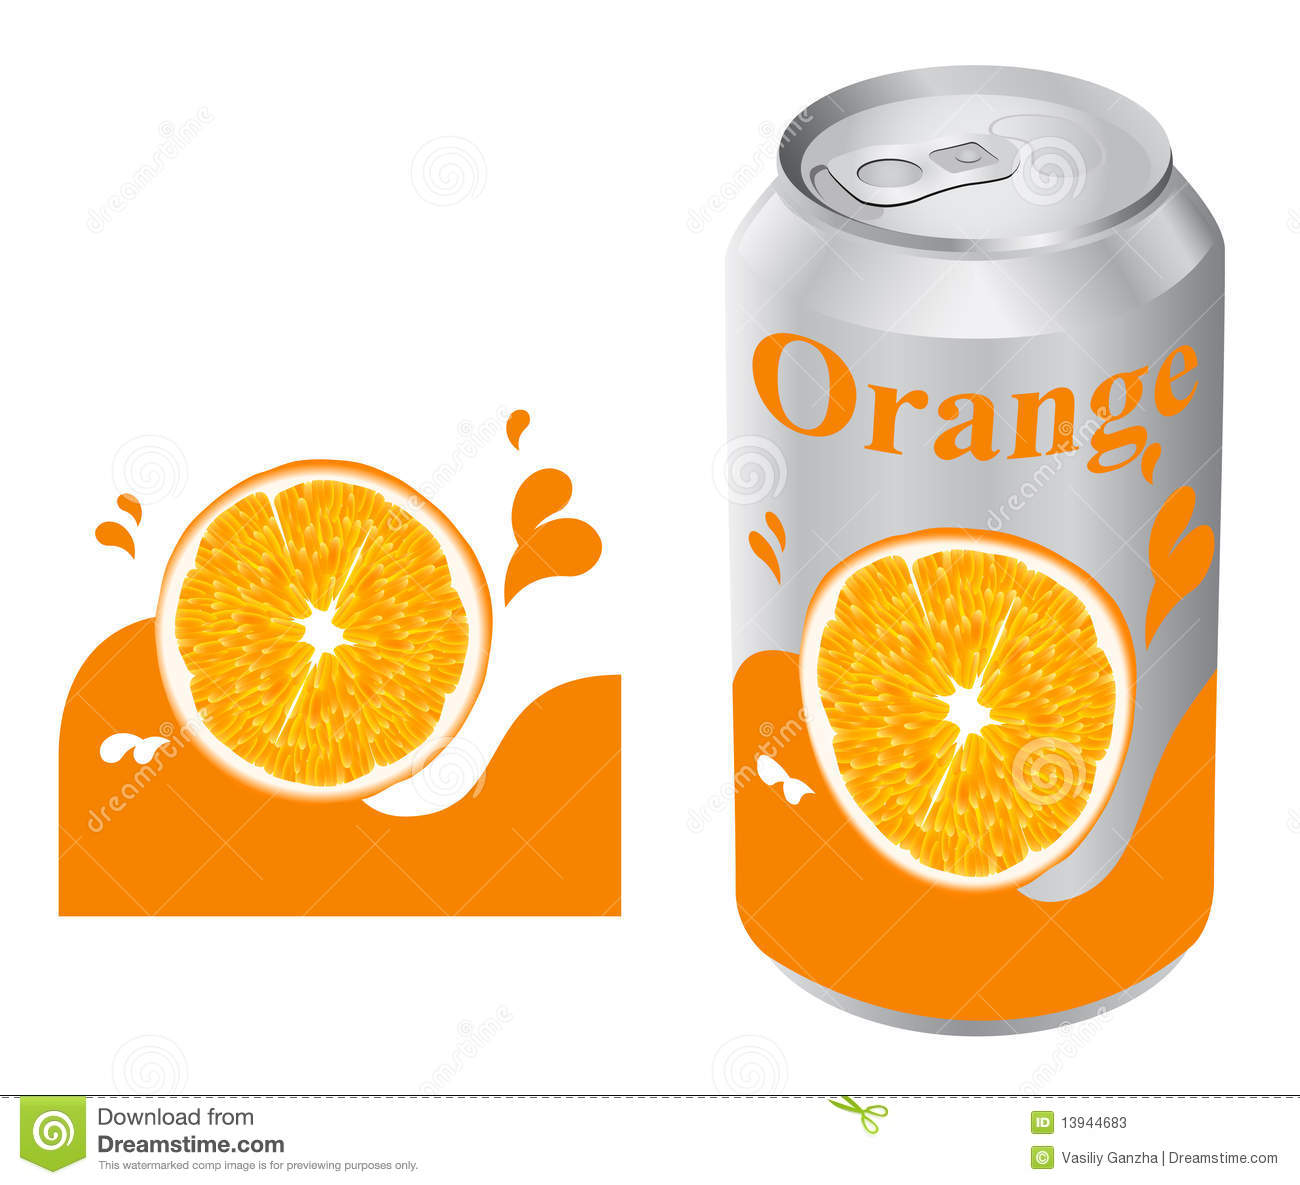 how to use orange juice 2k17